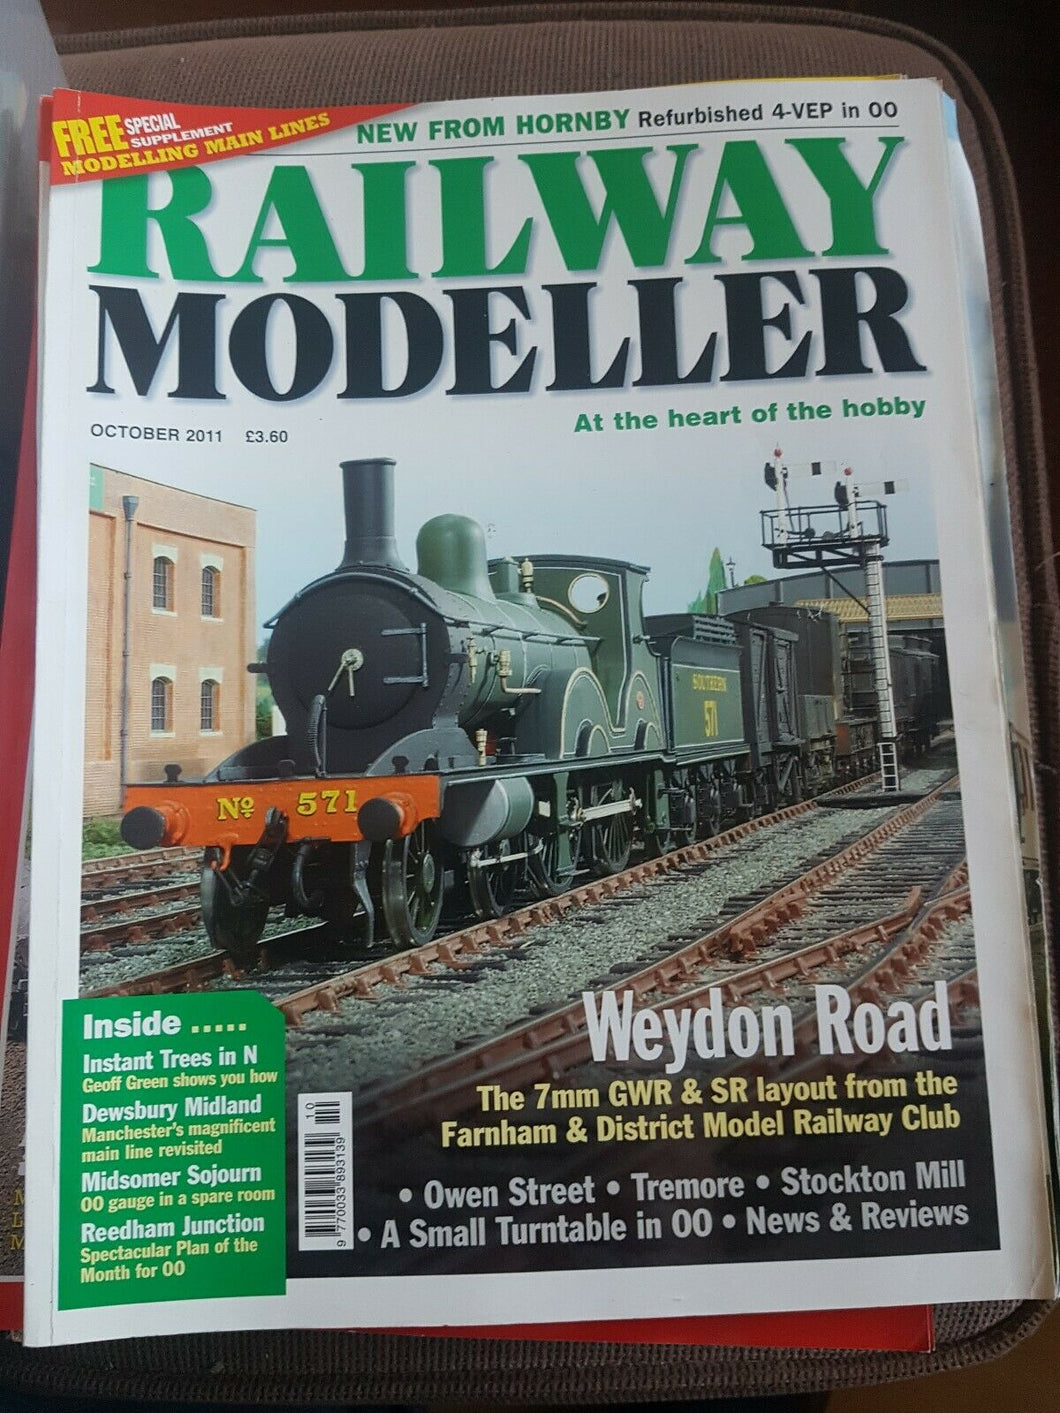 Railway modeller magazine October 2011